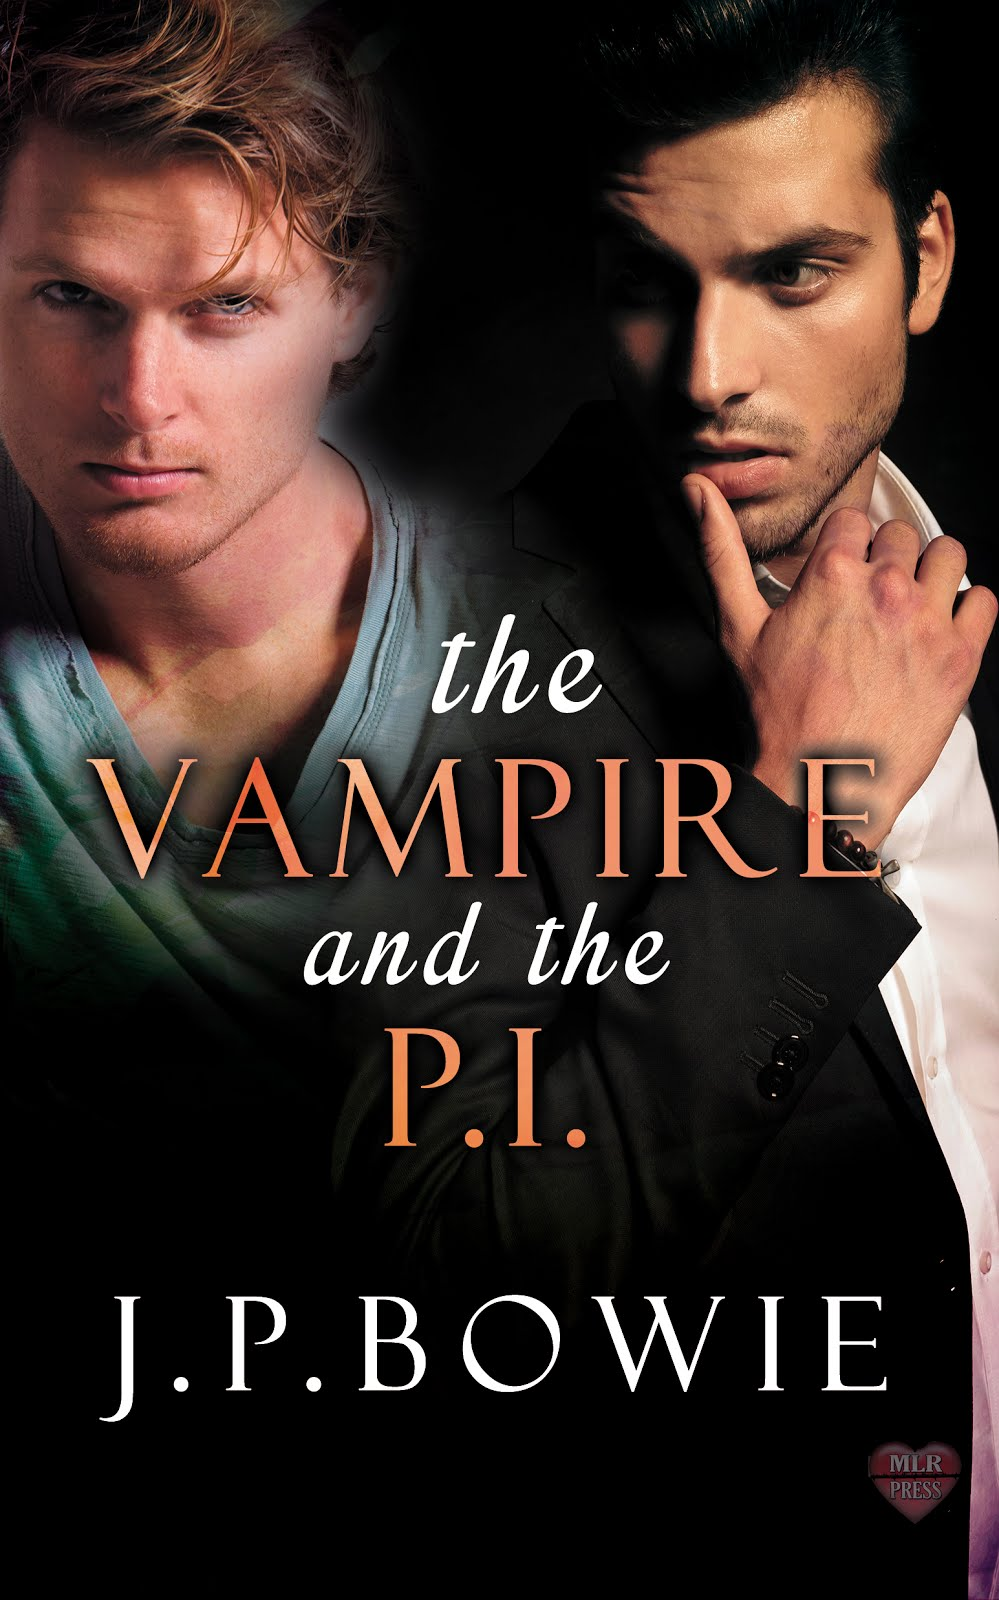 The Vampire and the P.I.